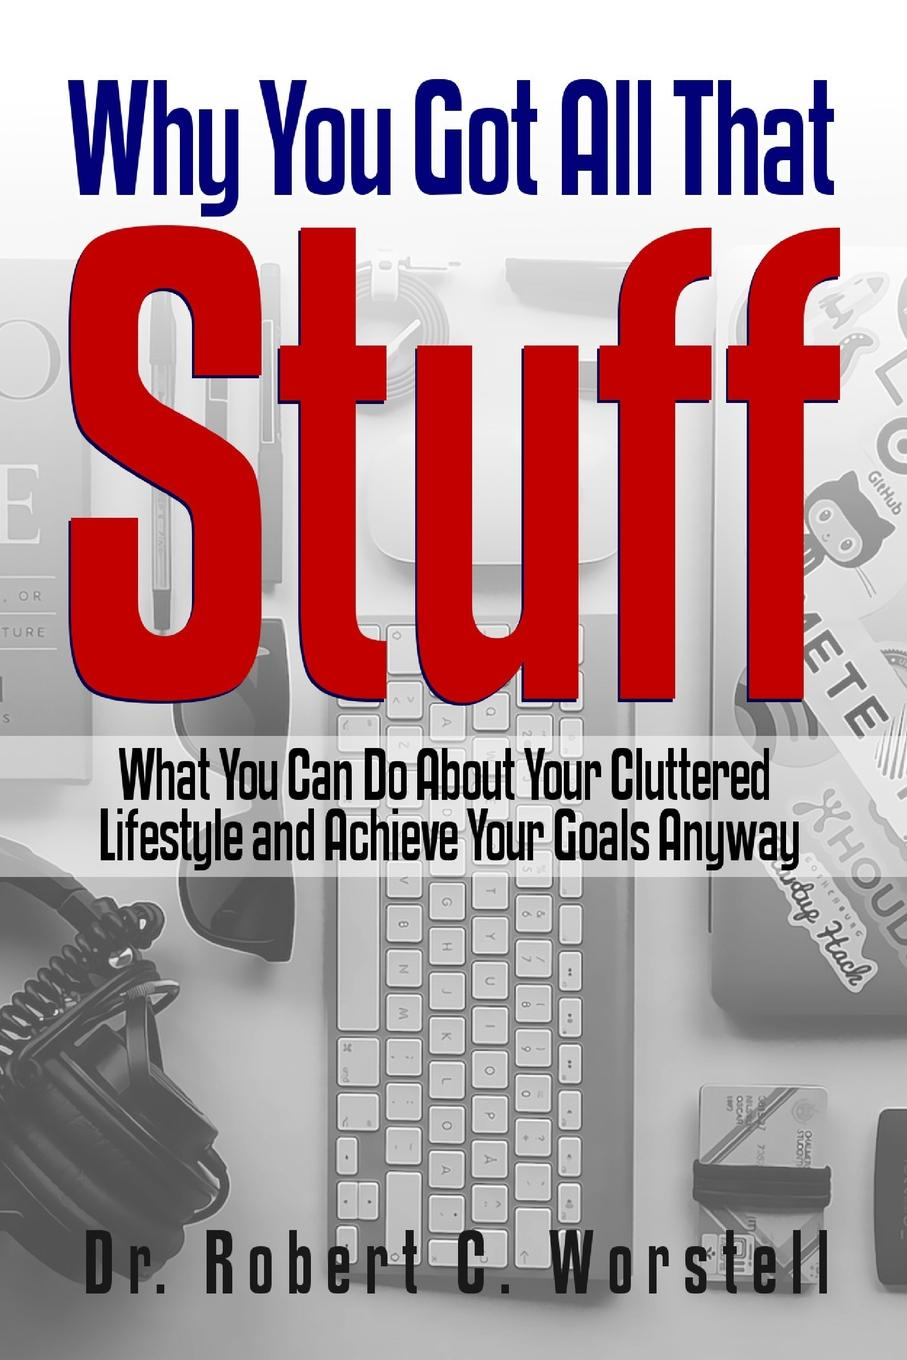 Dr. Robert C. Worstell Why You Got All That Stuff. What You Can Do About Your Cluttered Lifestyle and Achieve Your Goals Anyway